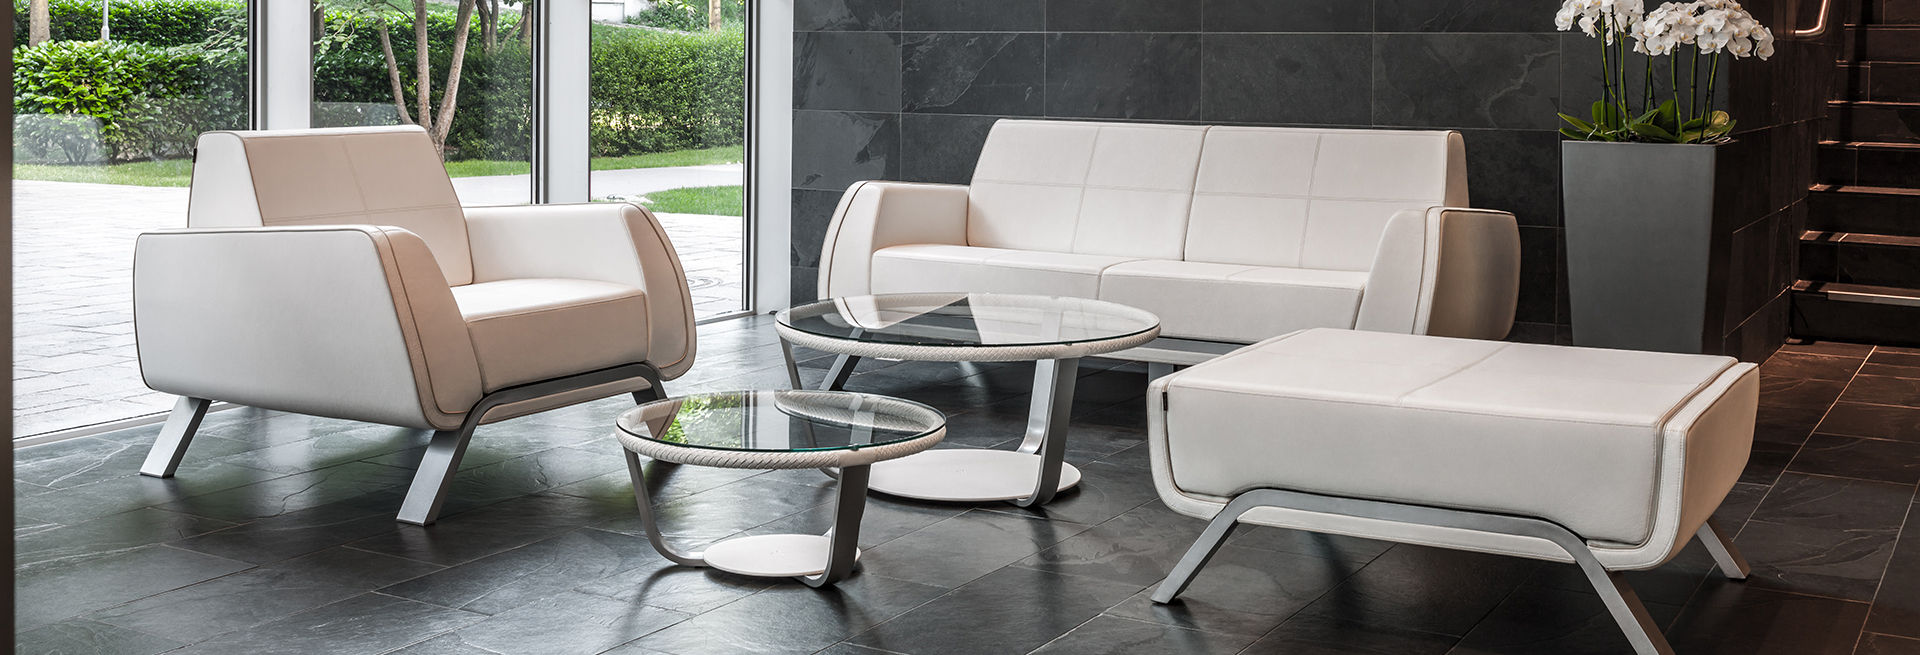 divine collection furniture. Lounge Tables : Boxmark XTREME Collection \u2013 Exclusive Leather Furniture For Interior And Exterior. Divine M